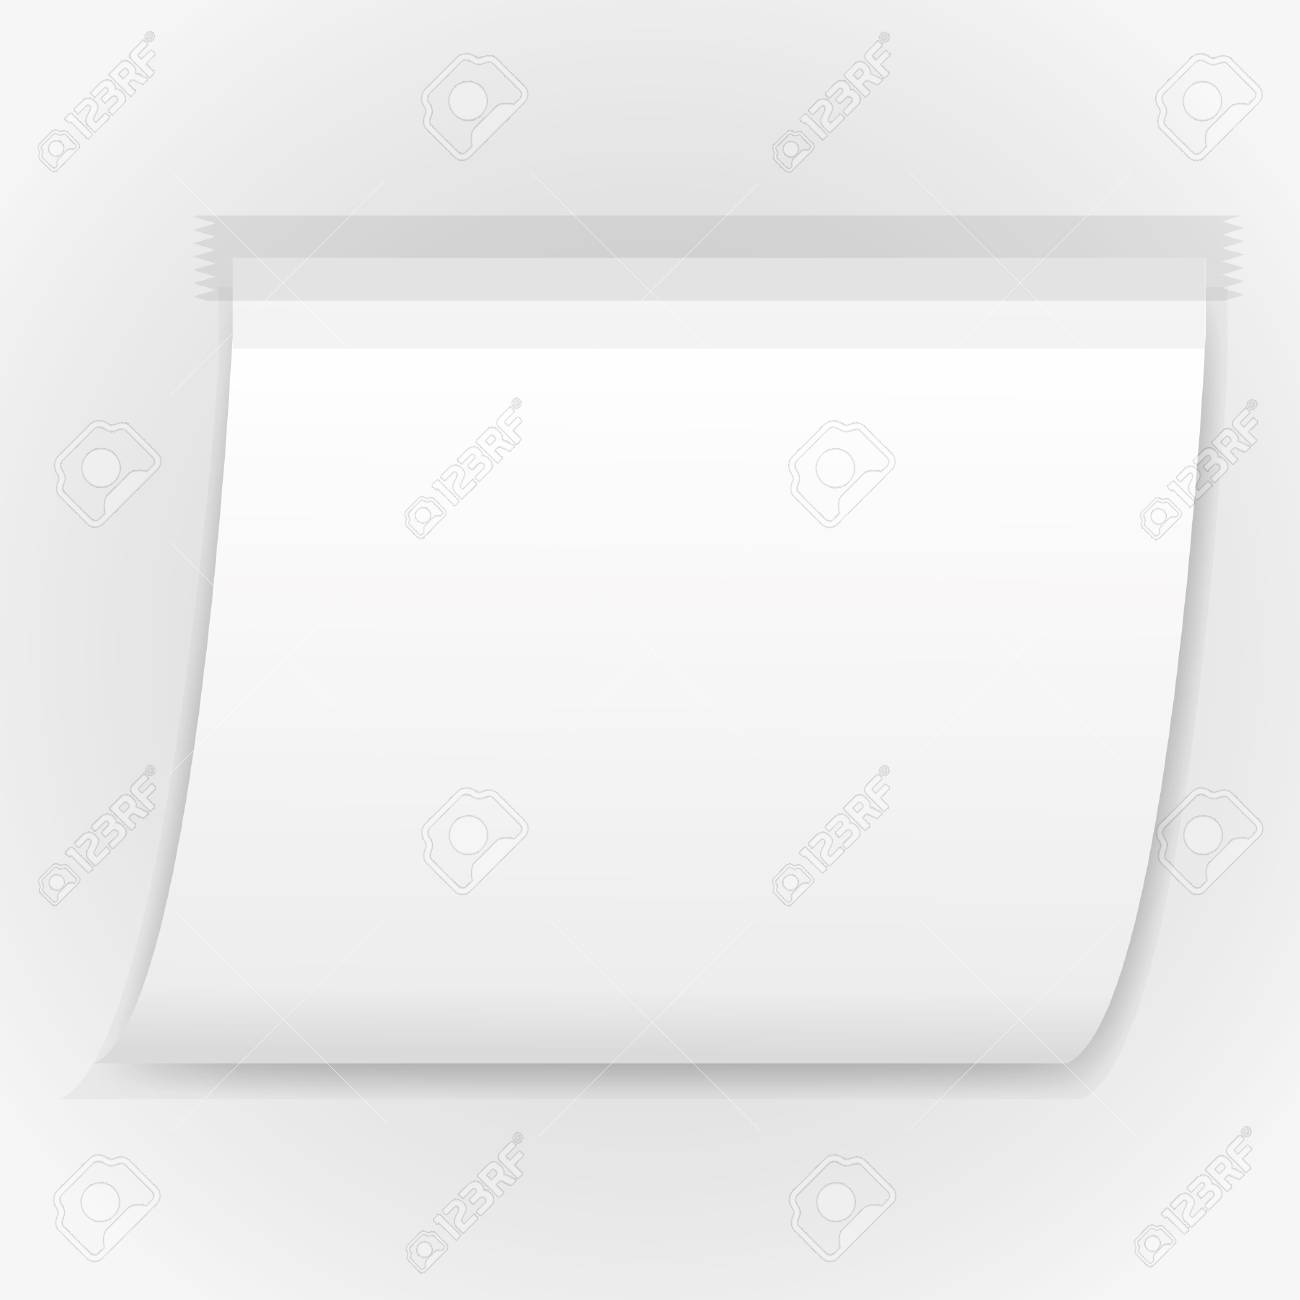 sticky pad on abstract backgrounds. Stock Vector - 11804225